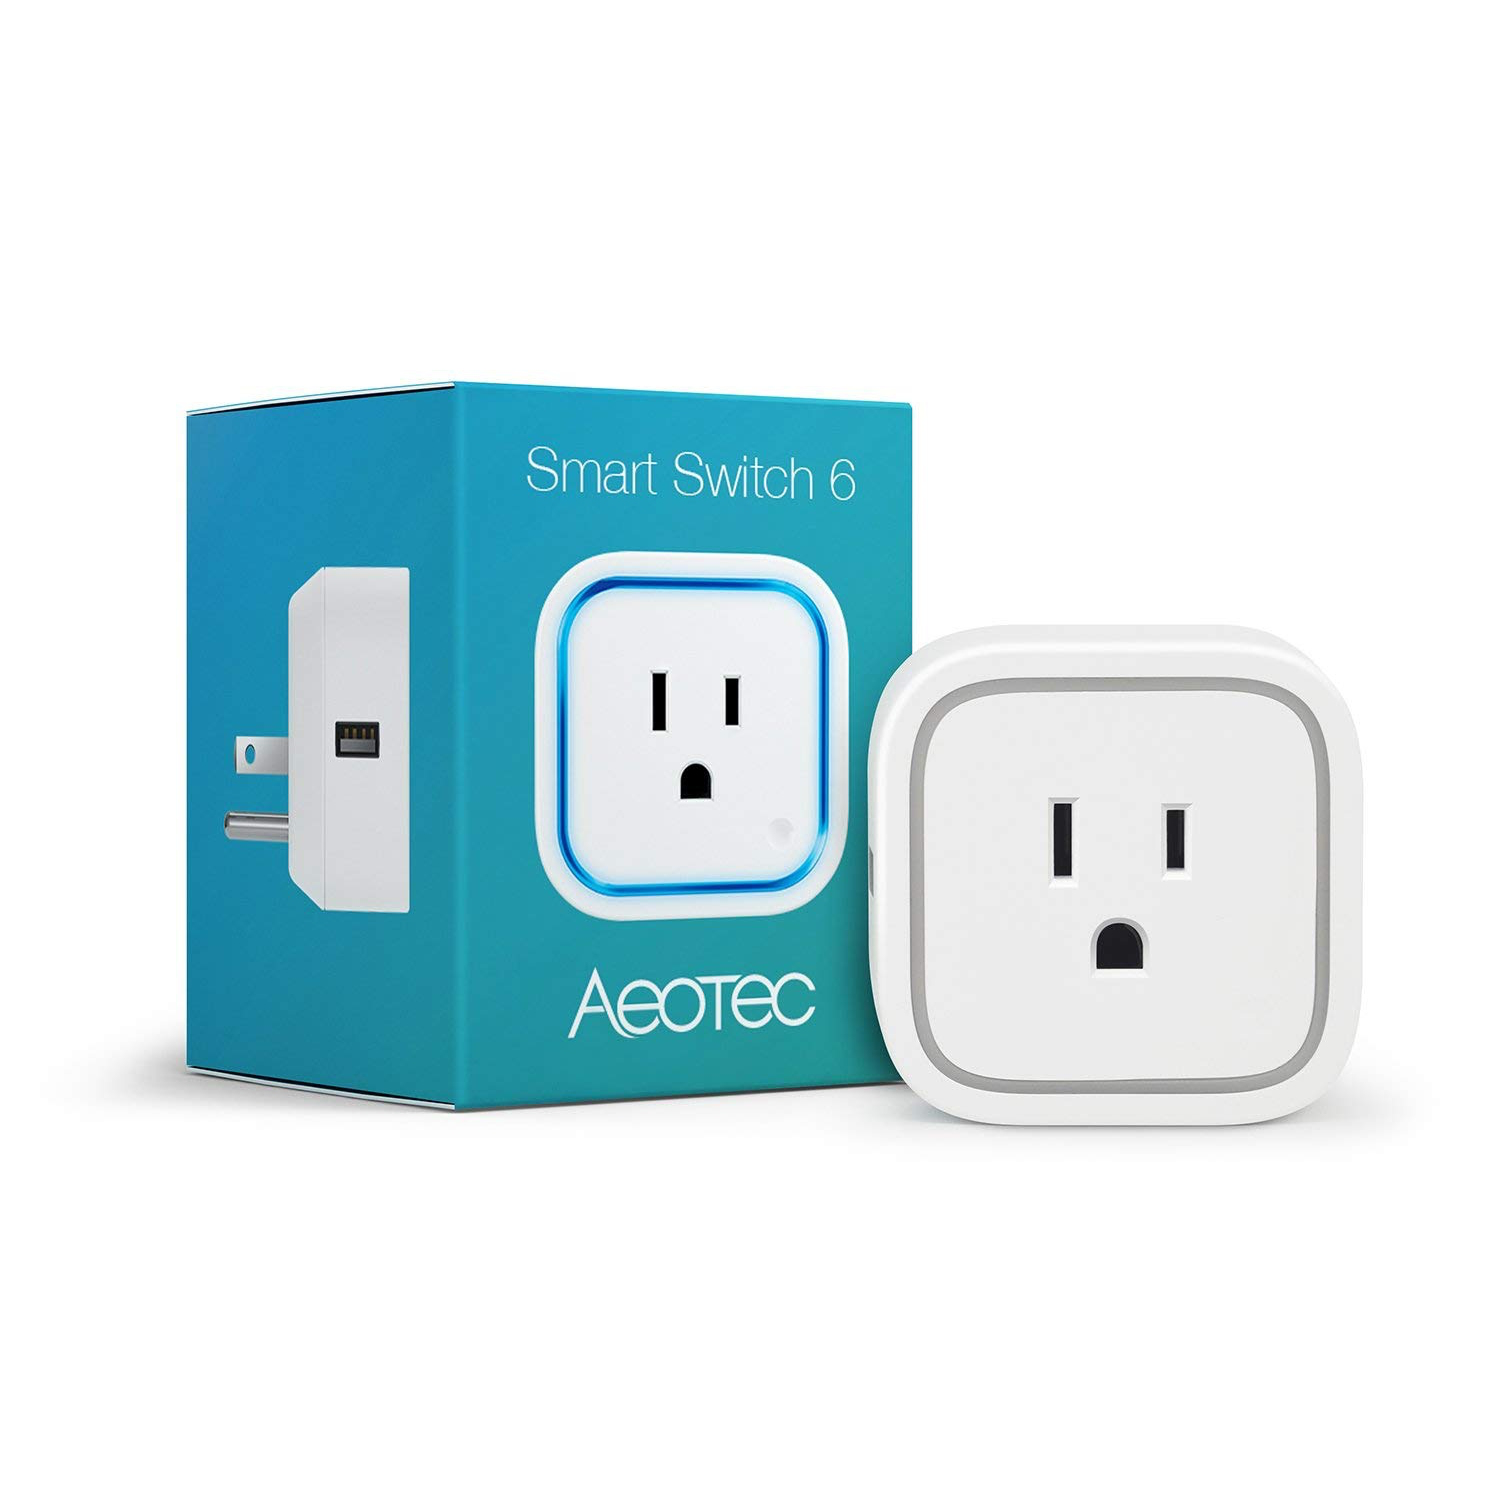 Aeotec Smart Switch 6 Limota Home Automation Reach Out